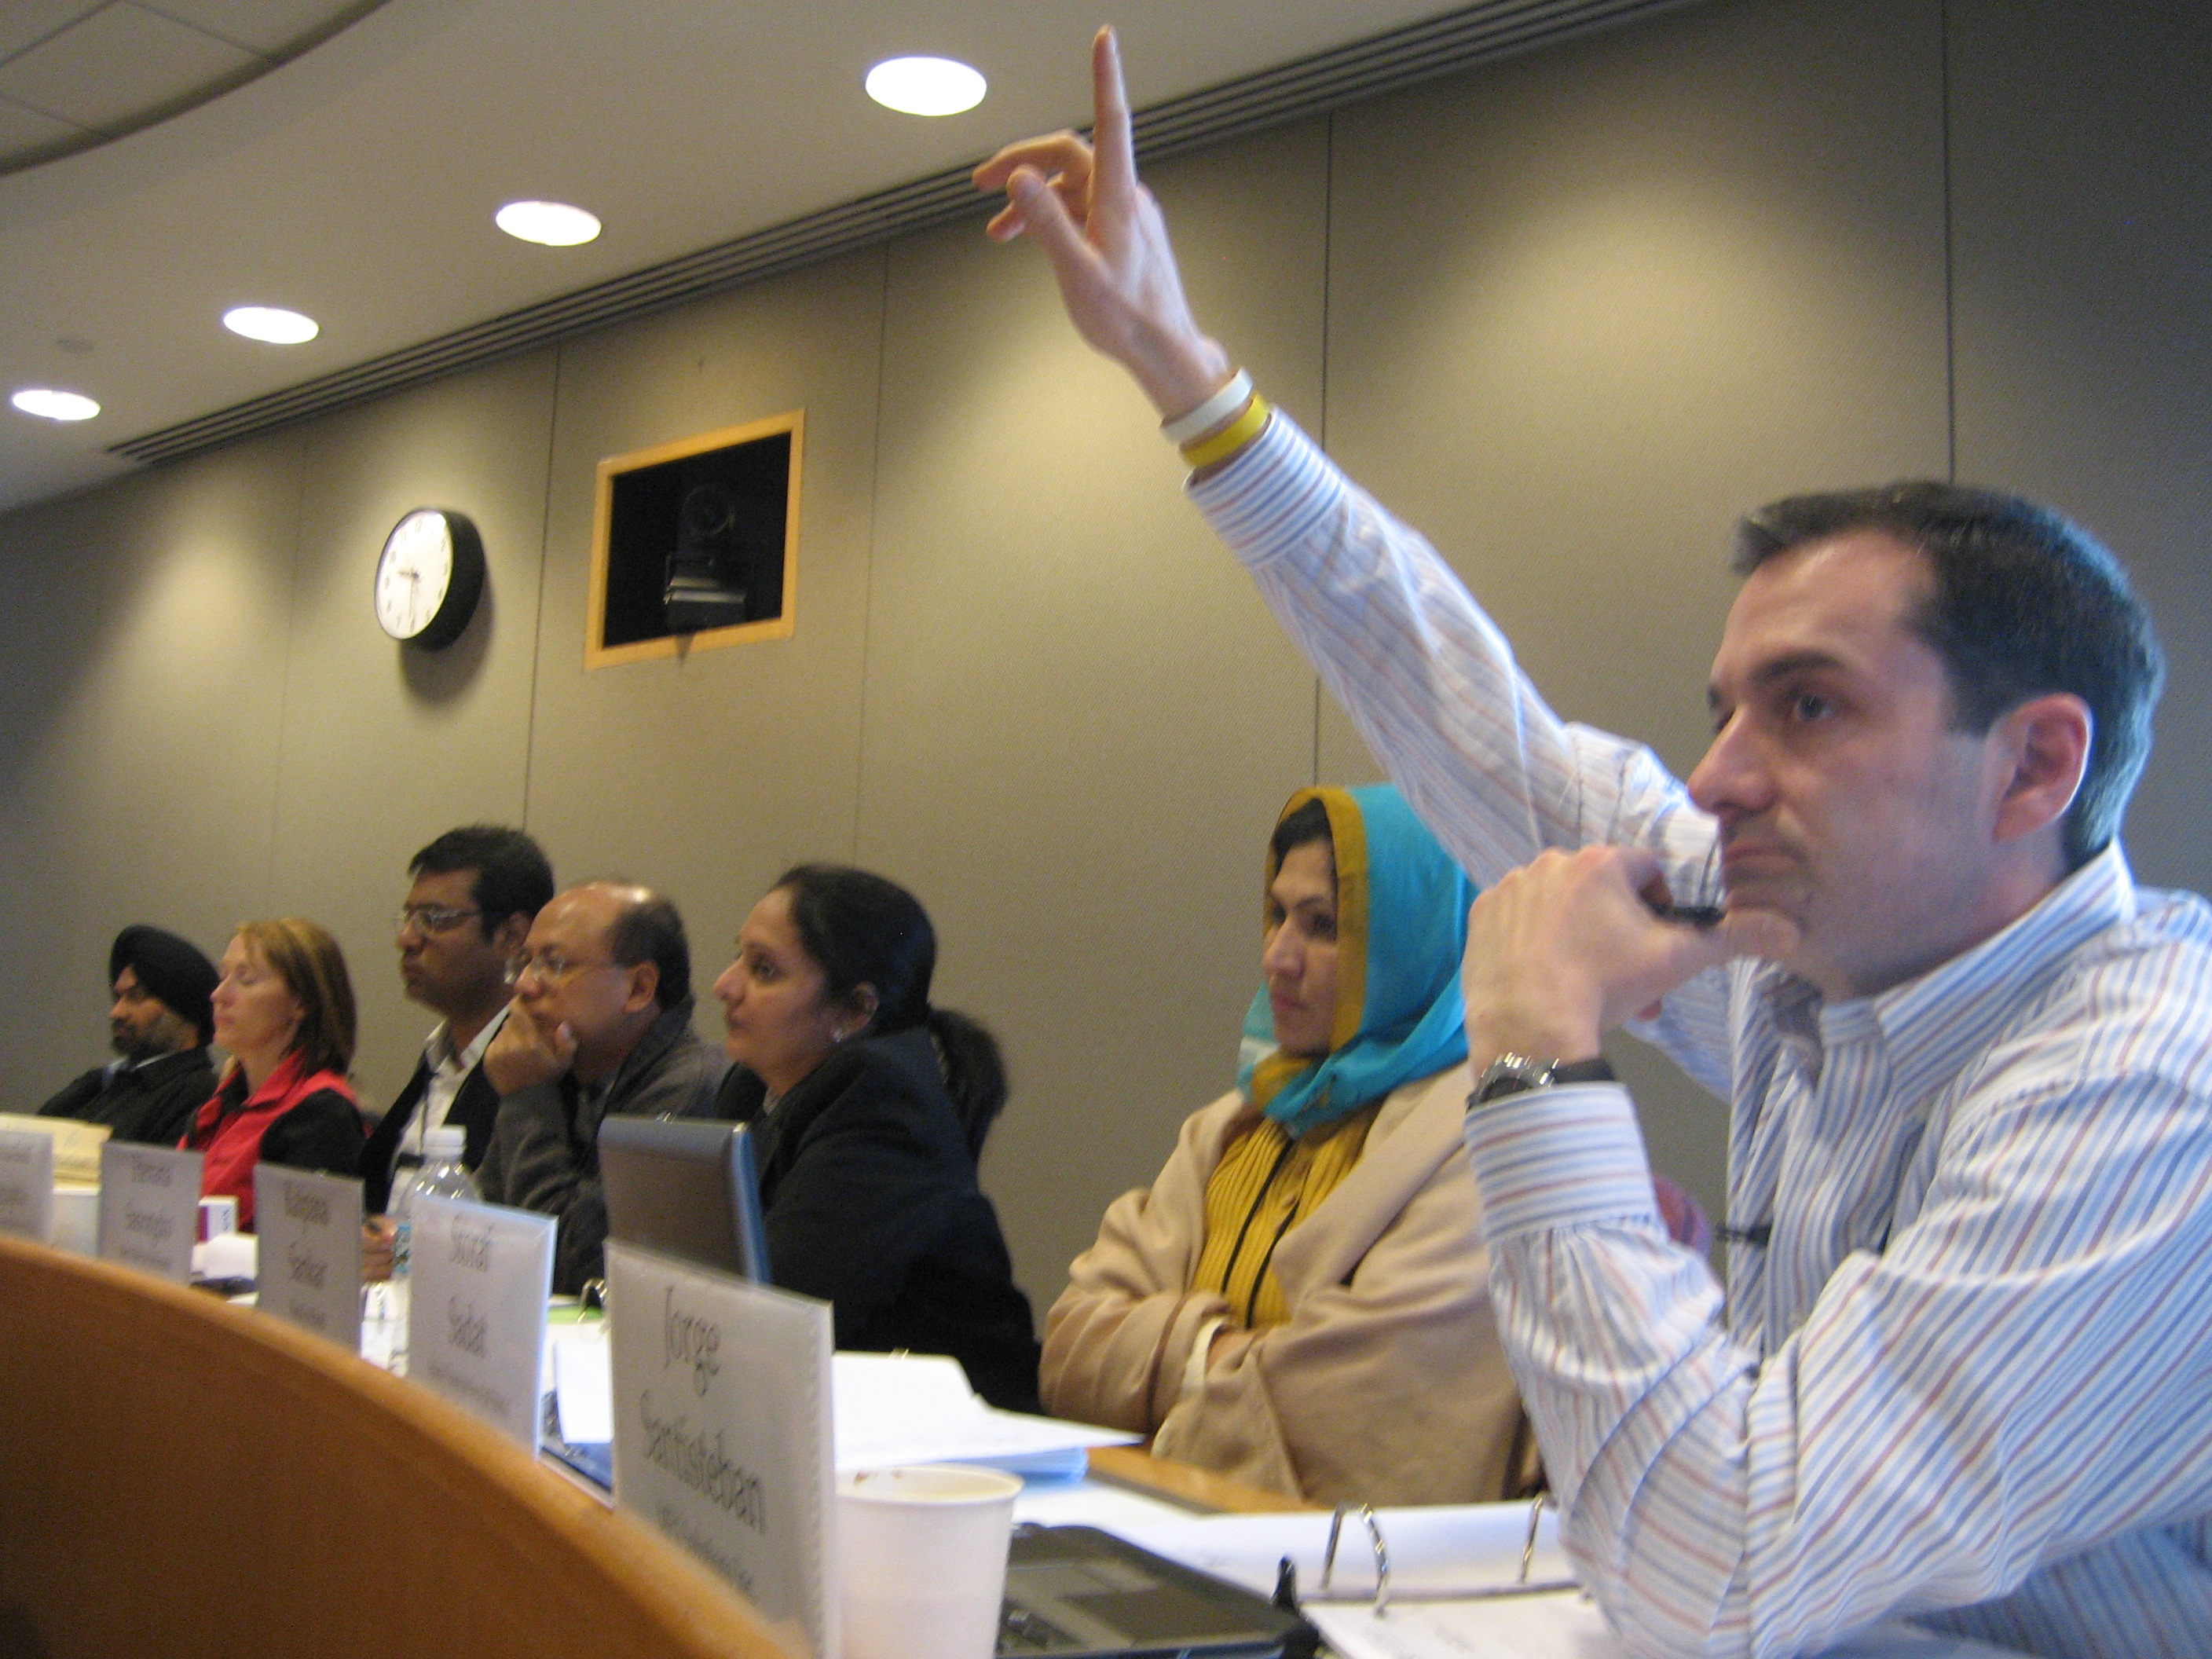 Participants from the 2009 HBS-ACCION Course on Strategic Leadership in Microfinance